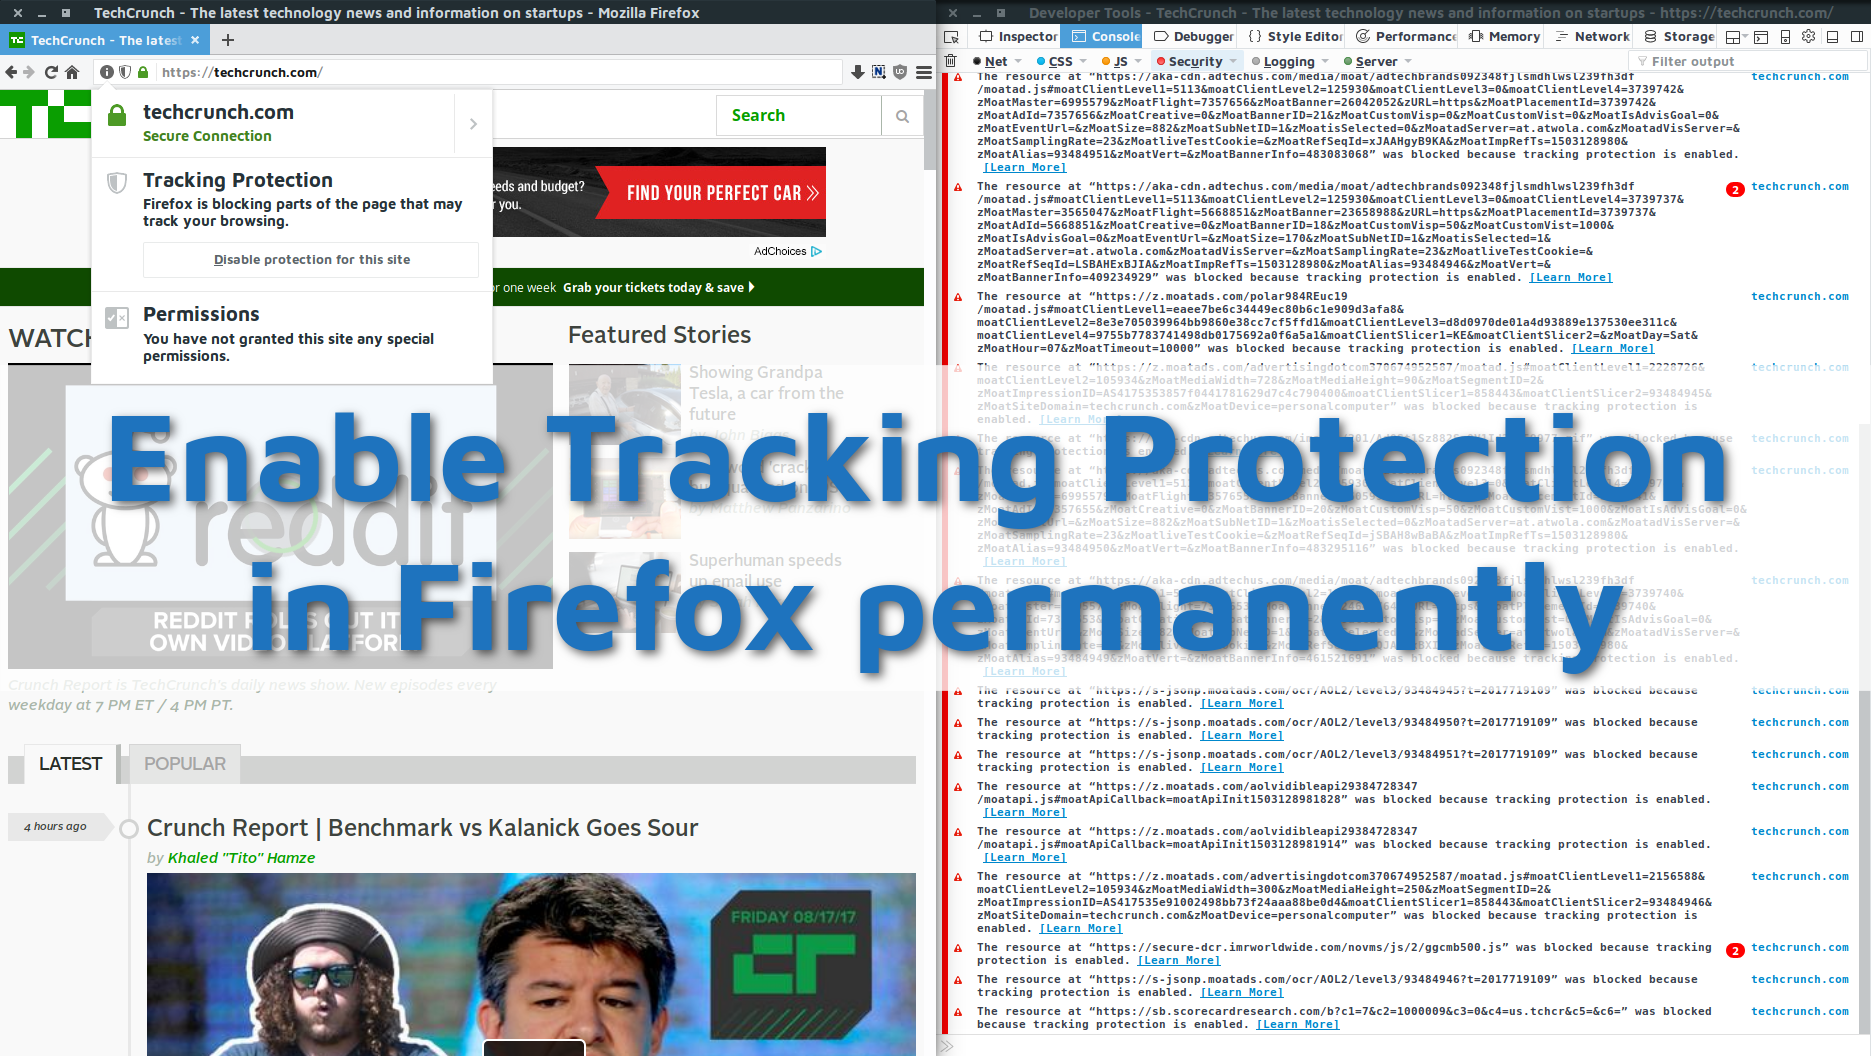 How to enable permanent Tracking Protection in Firefox